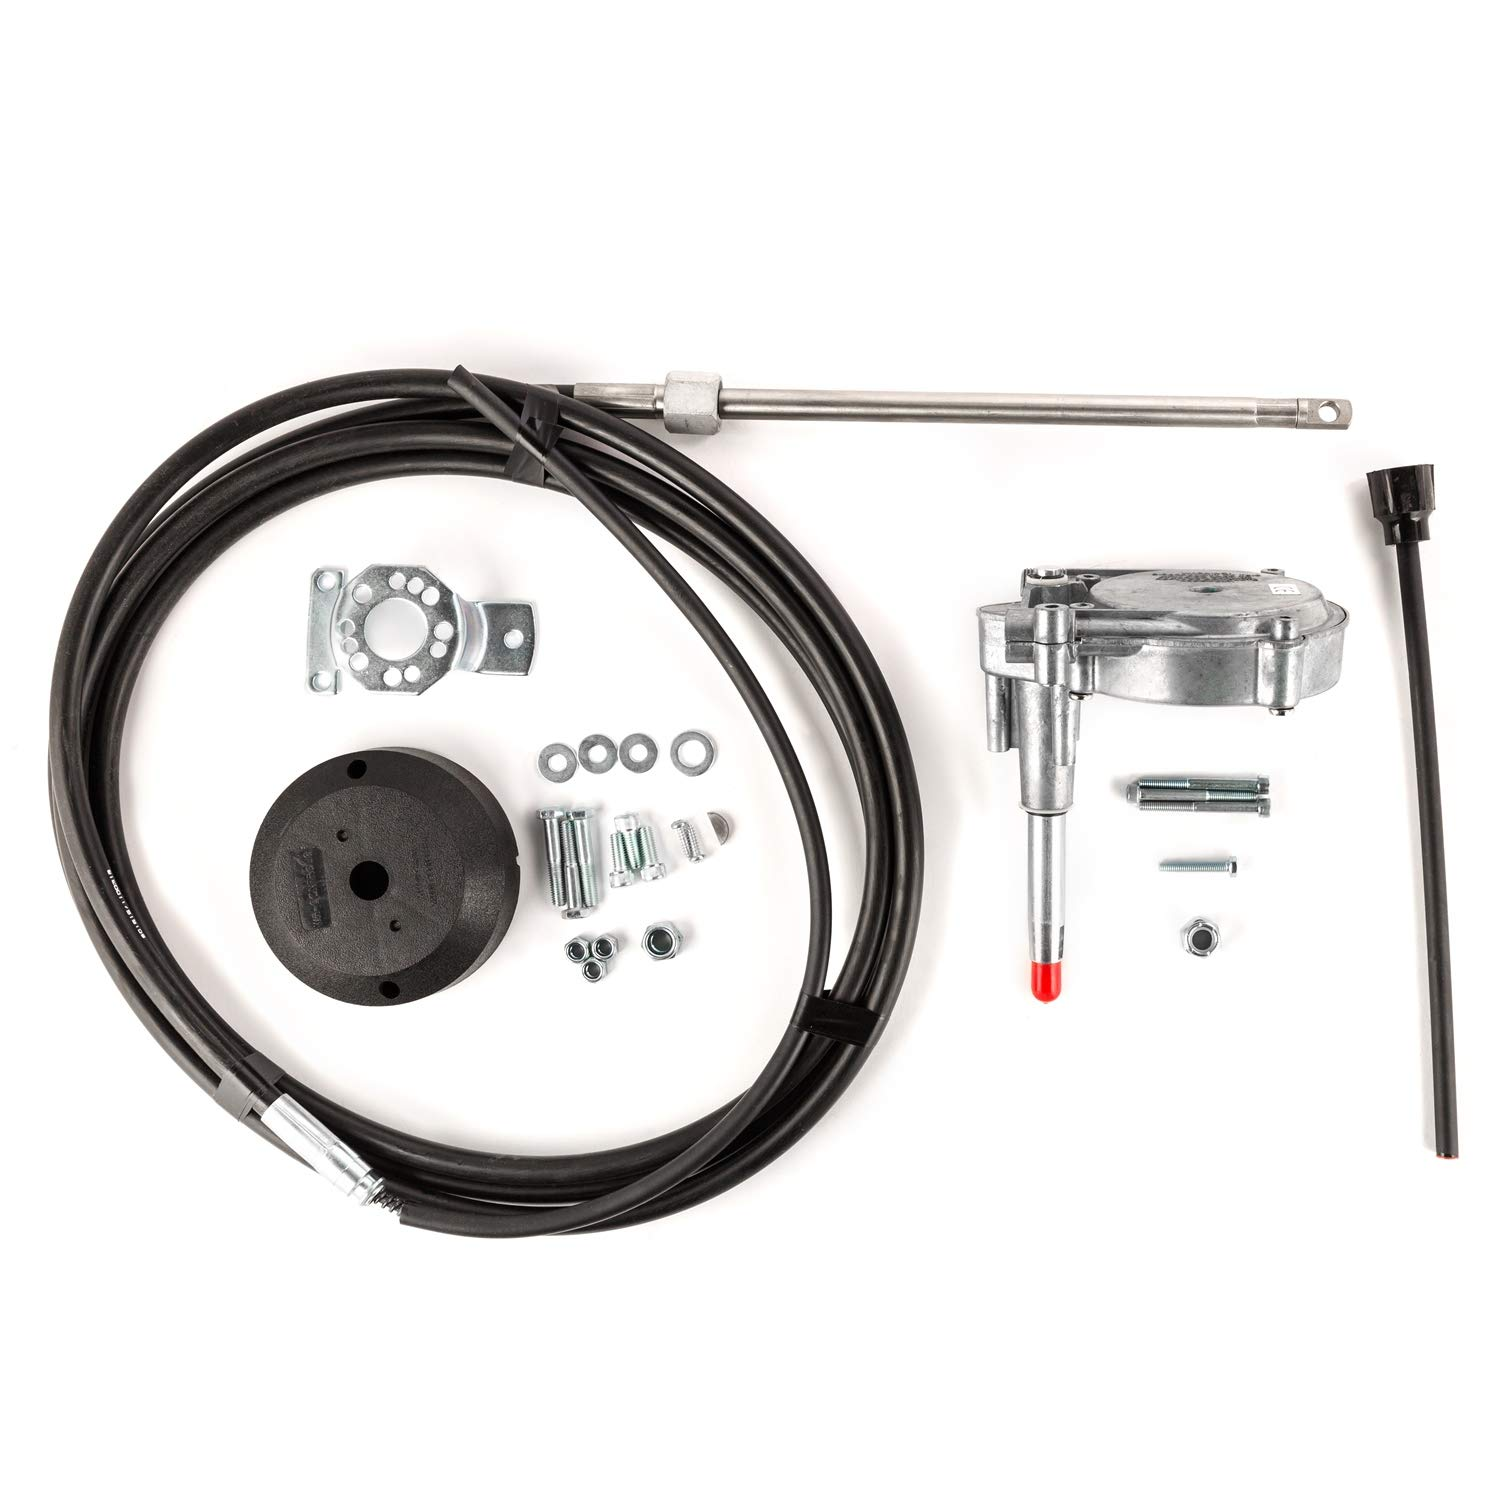 Kimpex Fast Connect Packaged Steering System by Kimpex